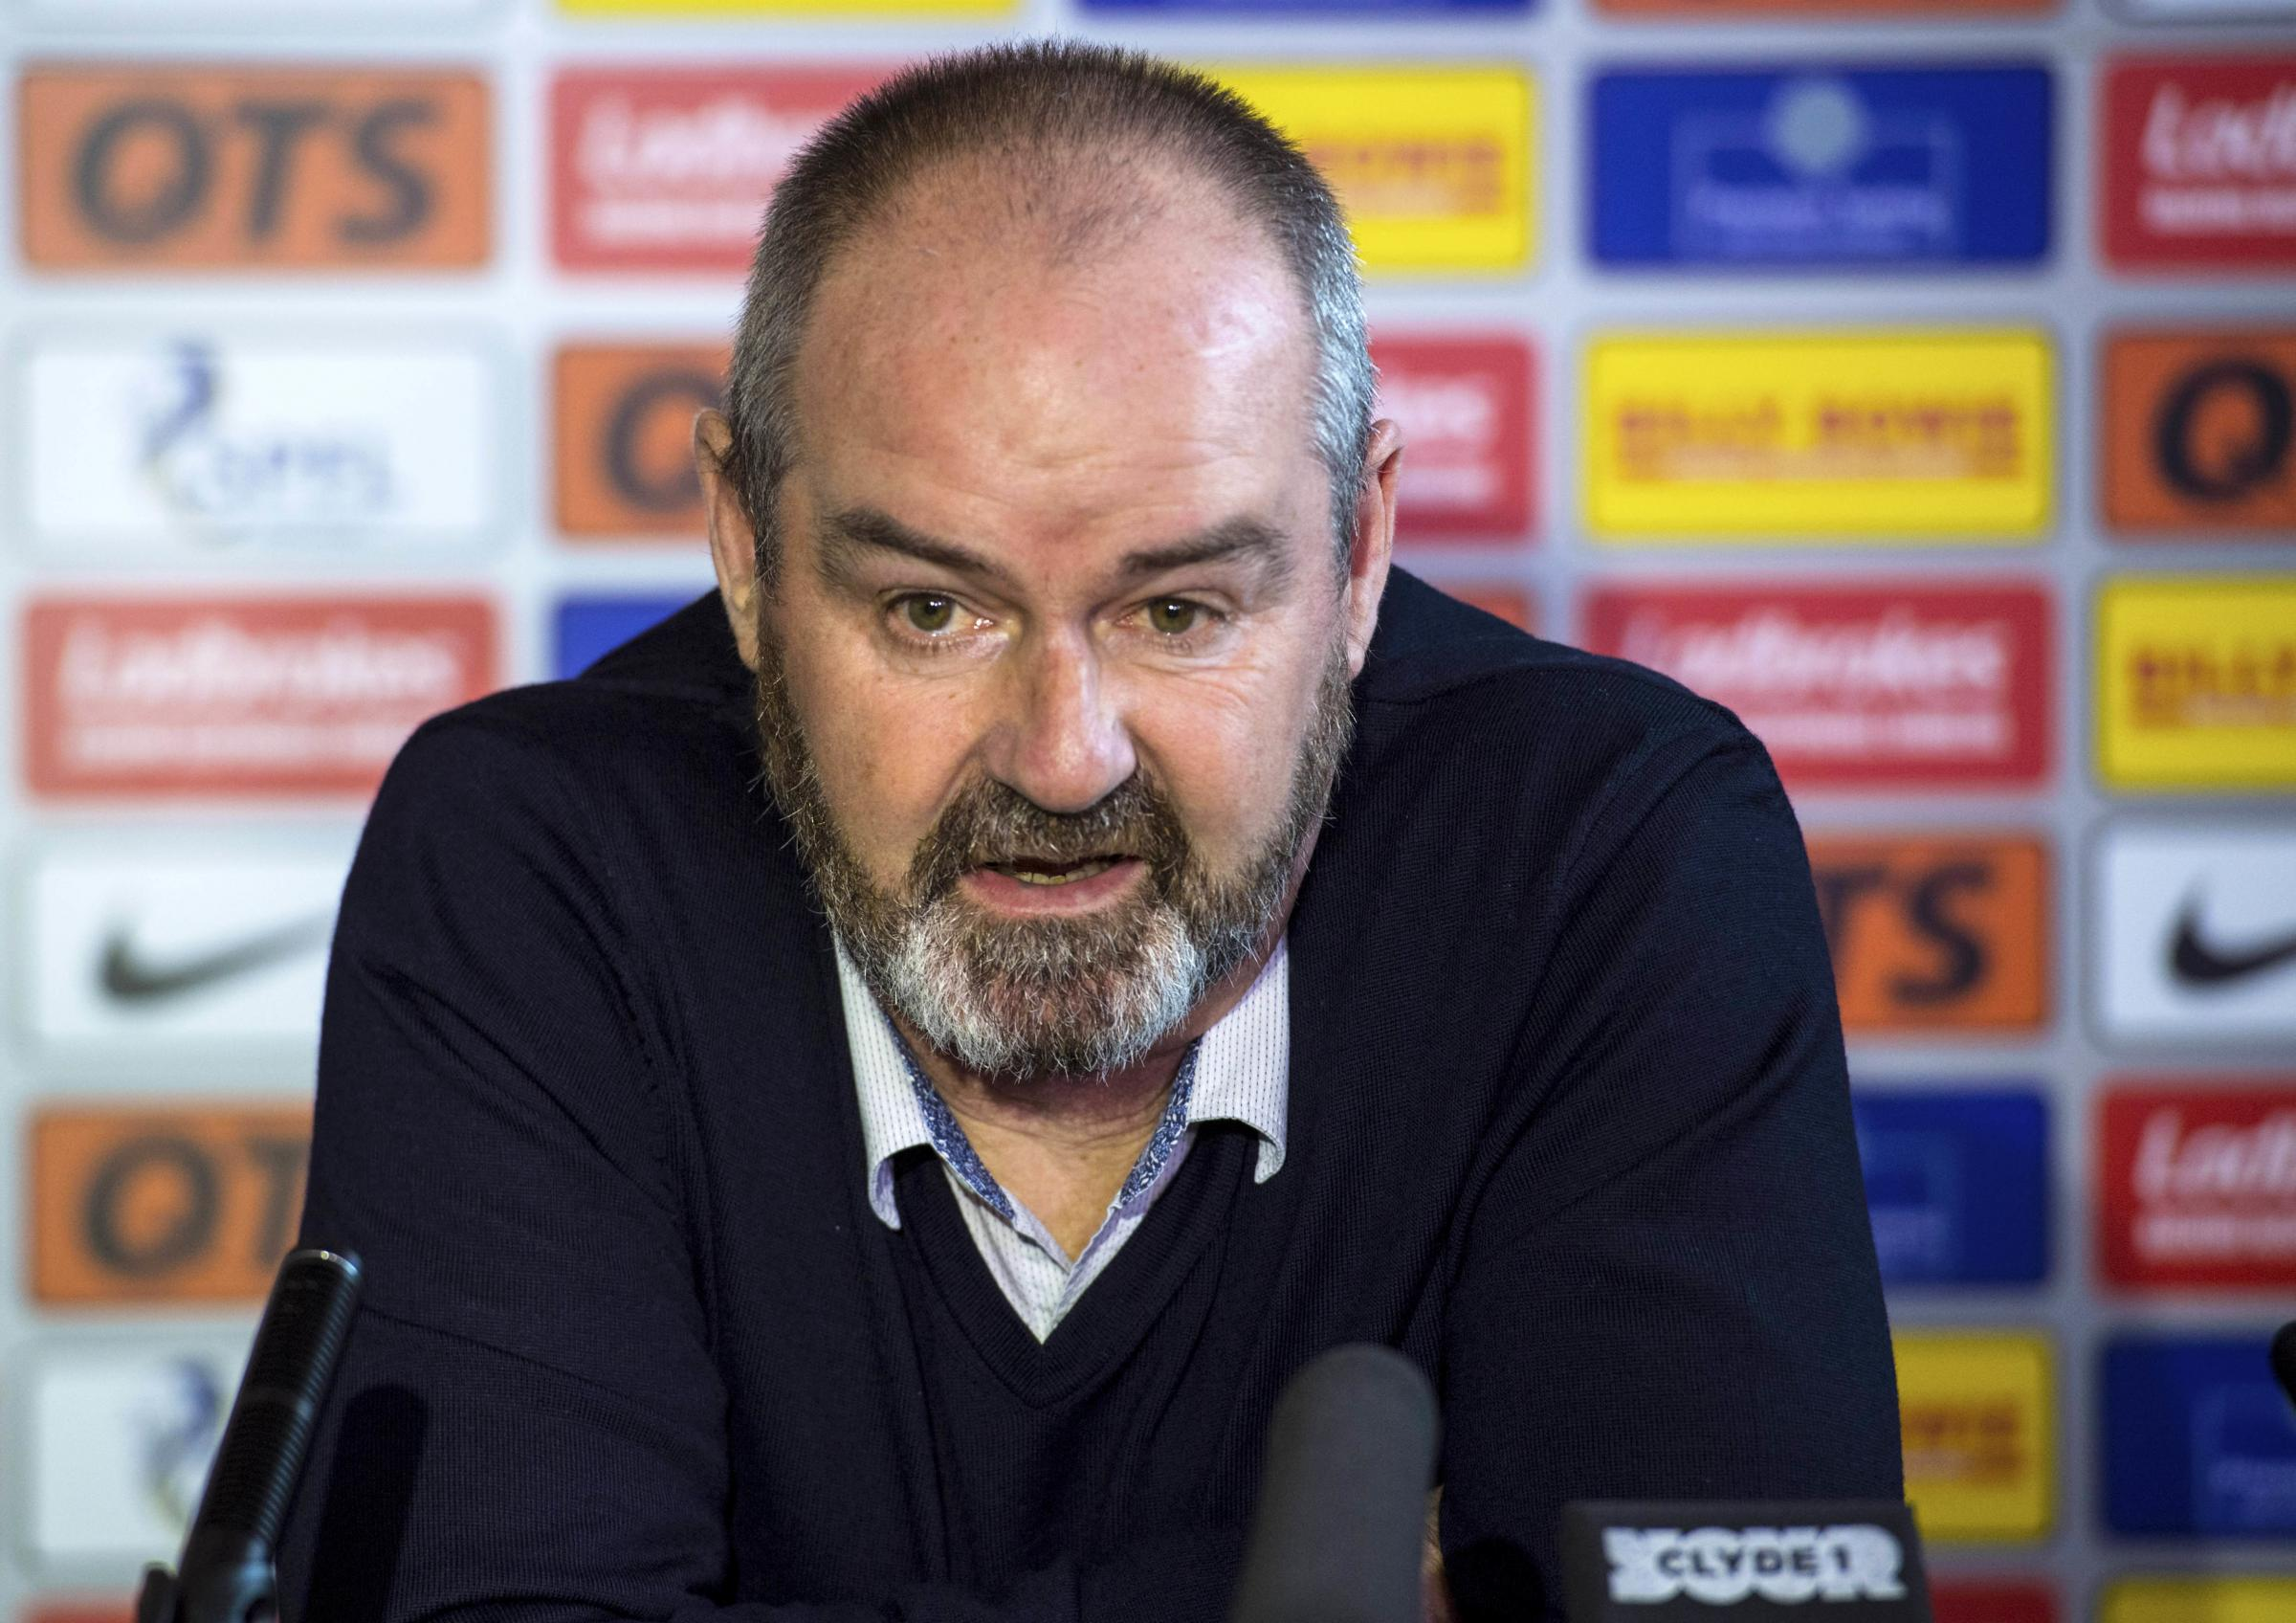 Steve Clarke: Managing Scotland would be an honour - we have the players to reach Euro 2020